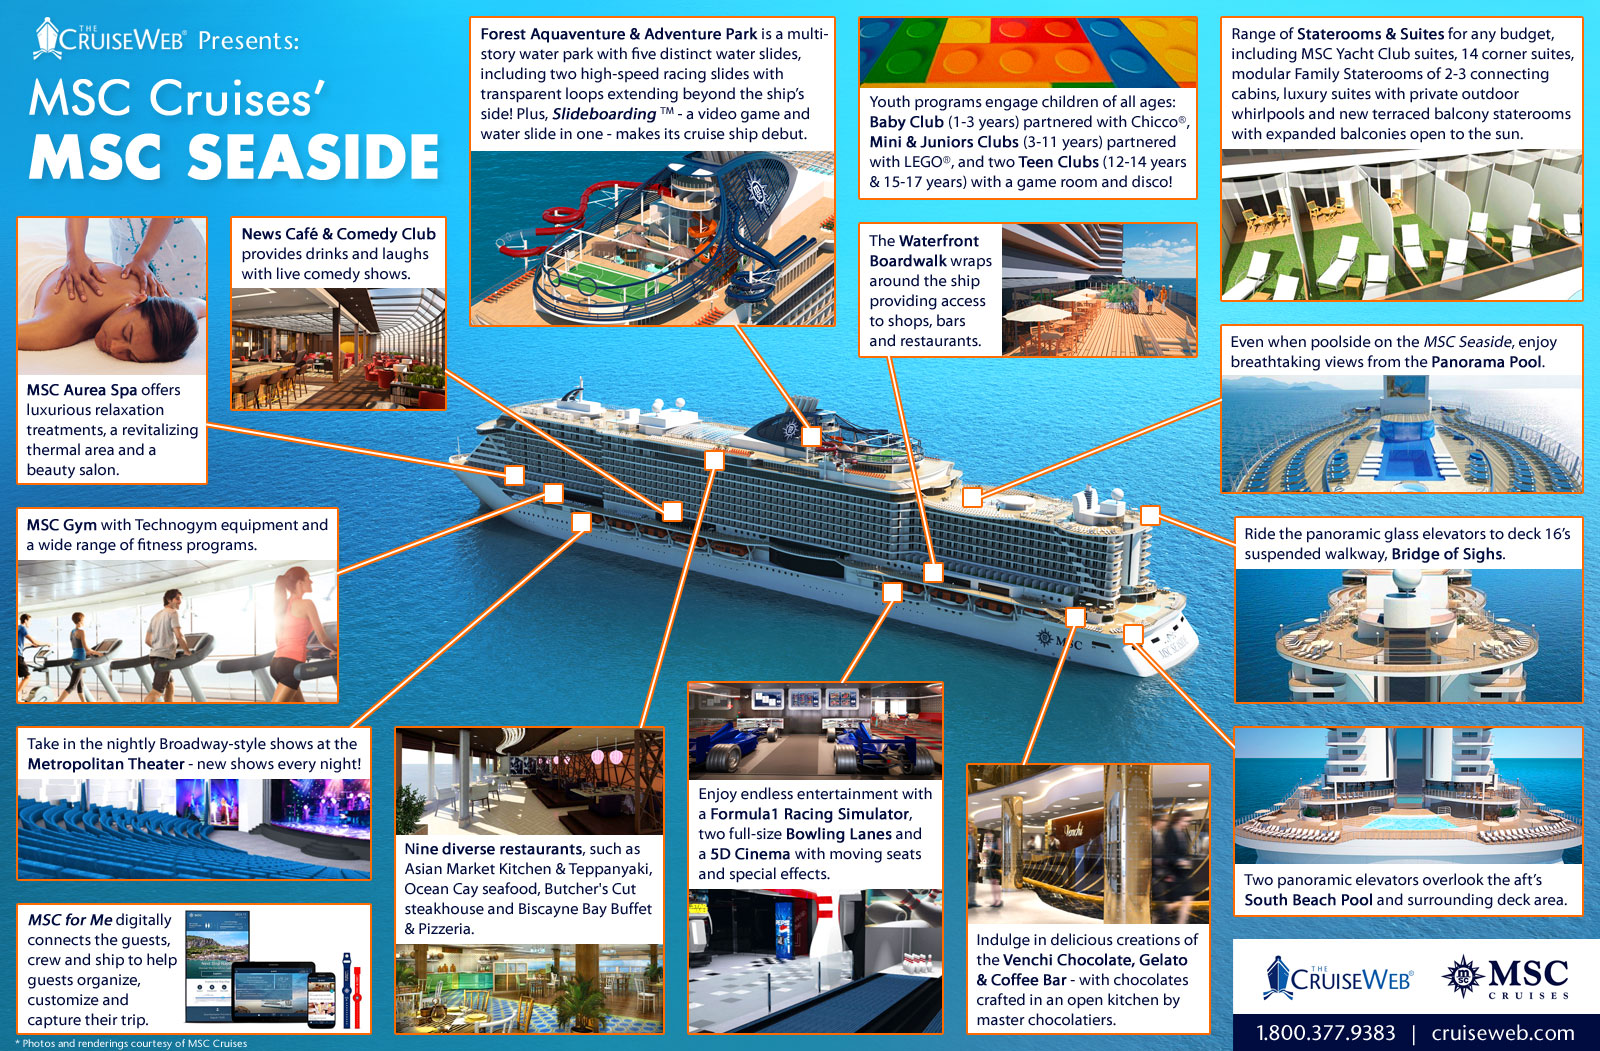 Explore The Futuristic Msc Seaside Cruise Ship With The